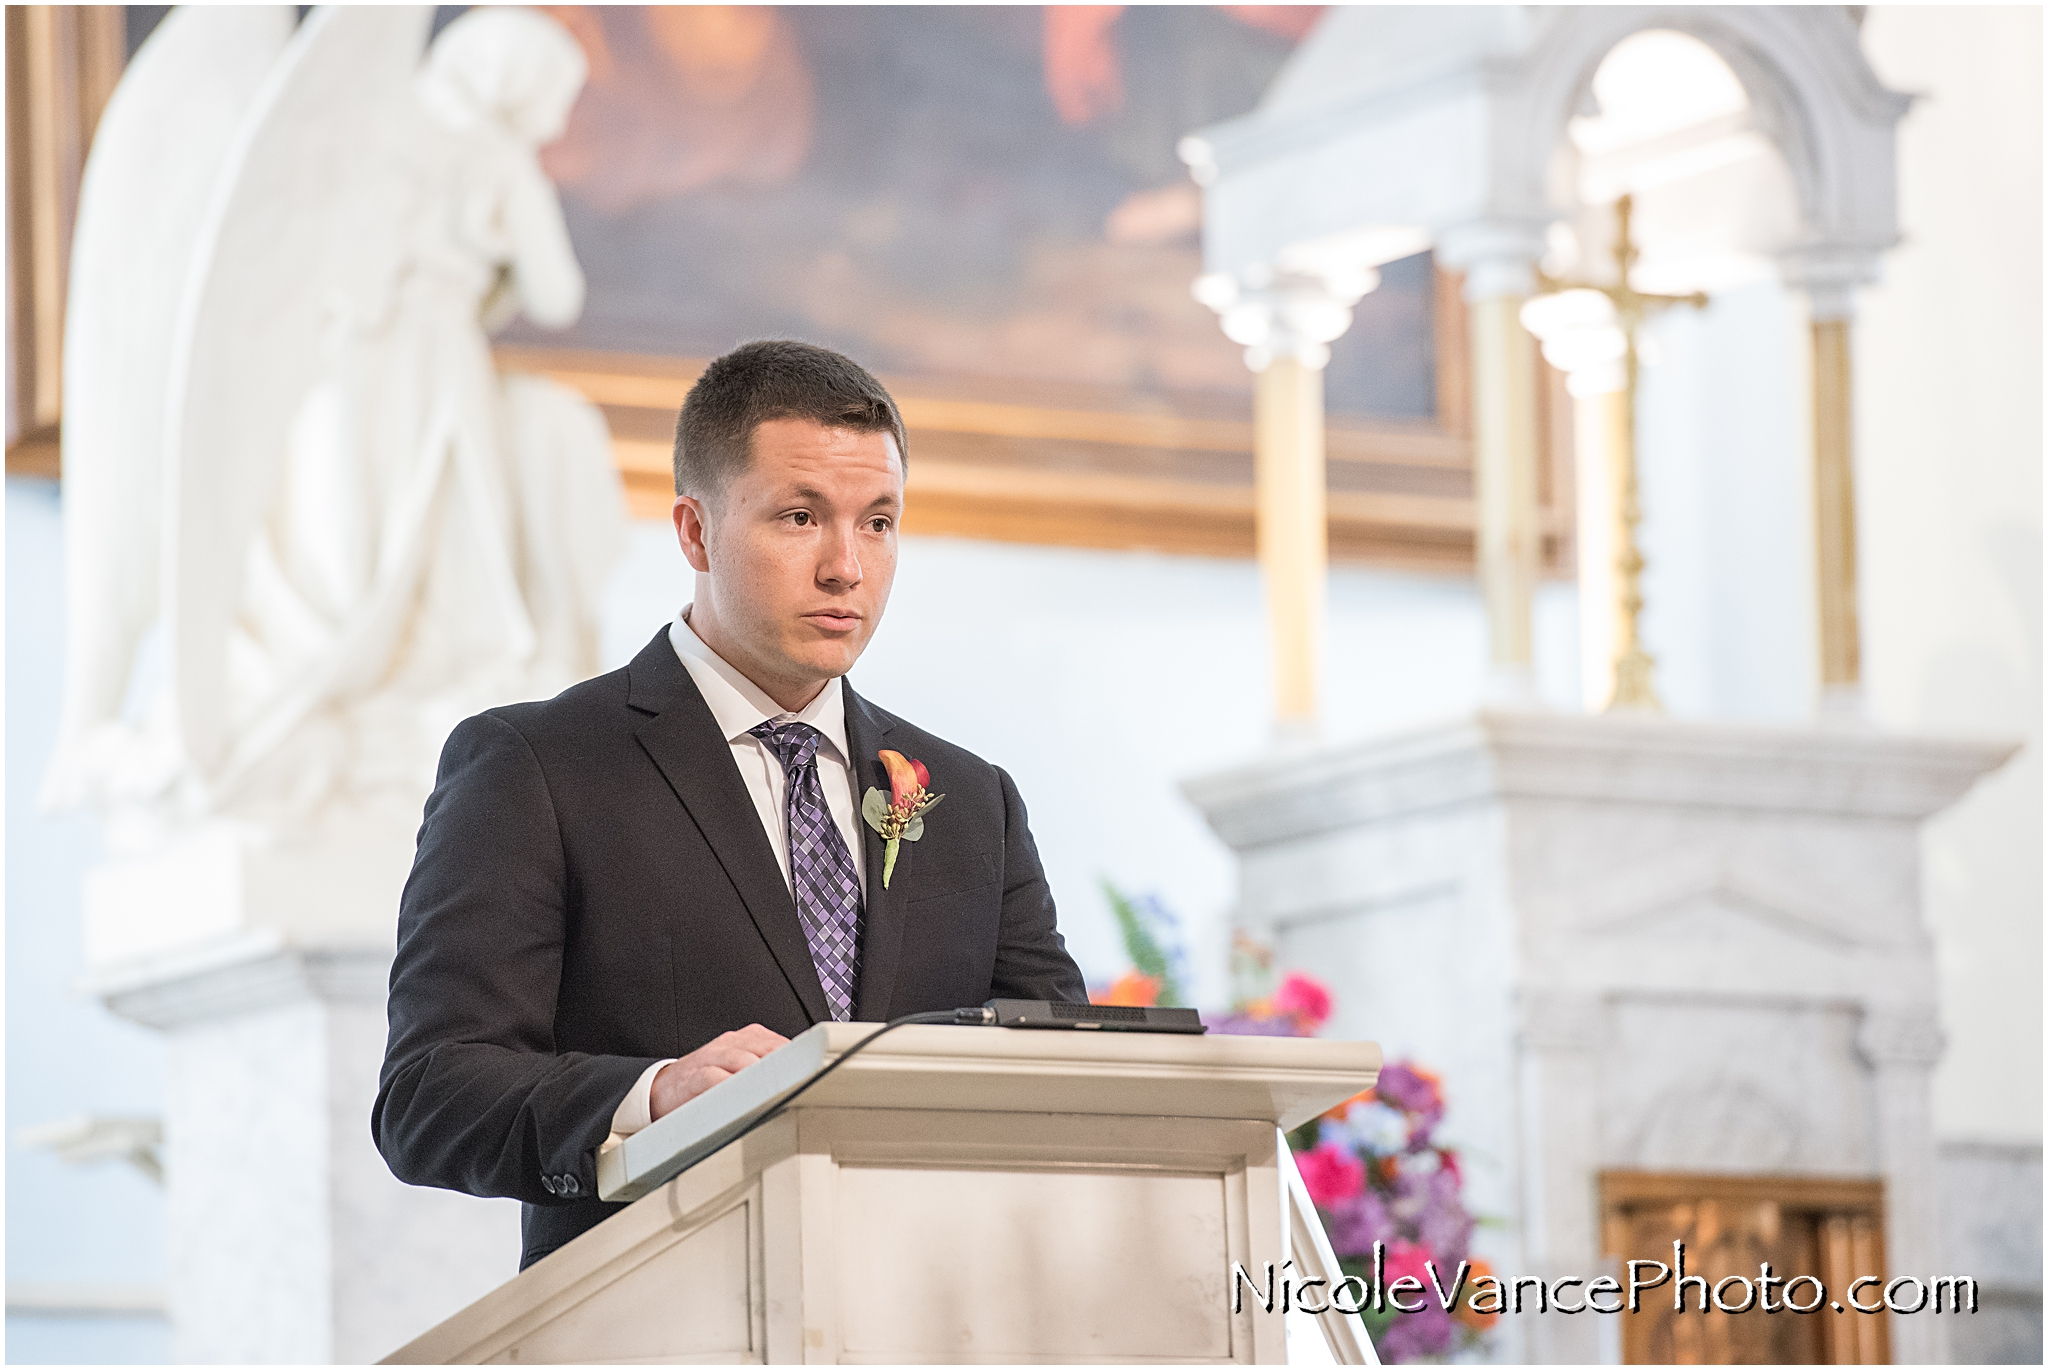 Scripture is read during a wedding ceremony at St Peter's Catholic Church in Richmond, Virginia.